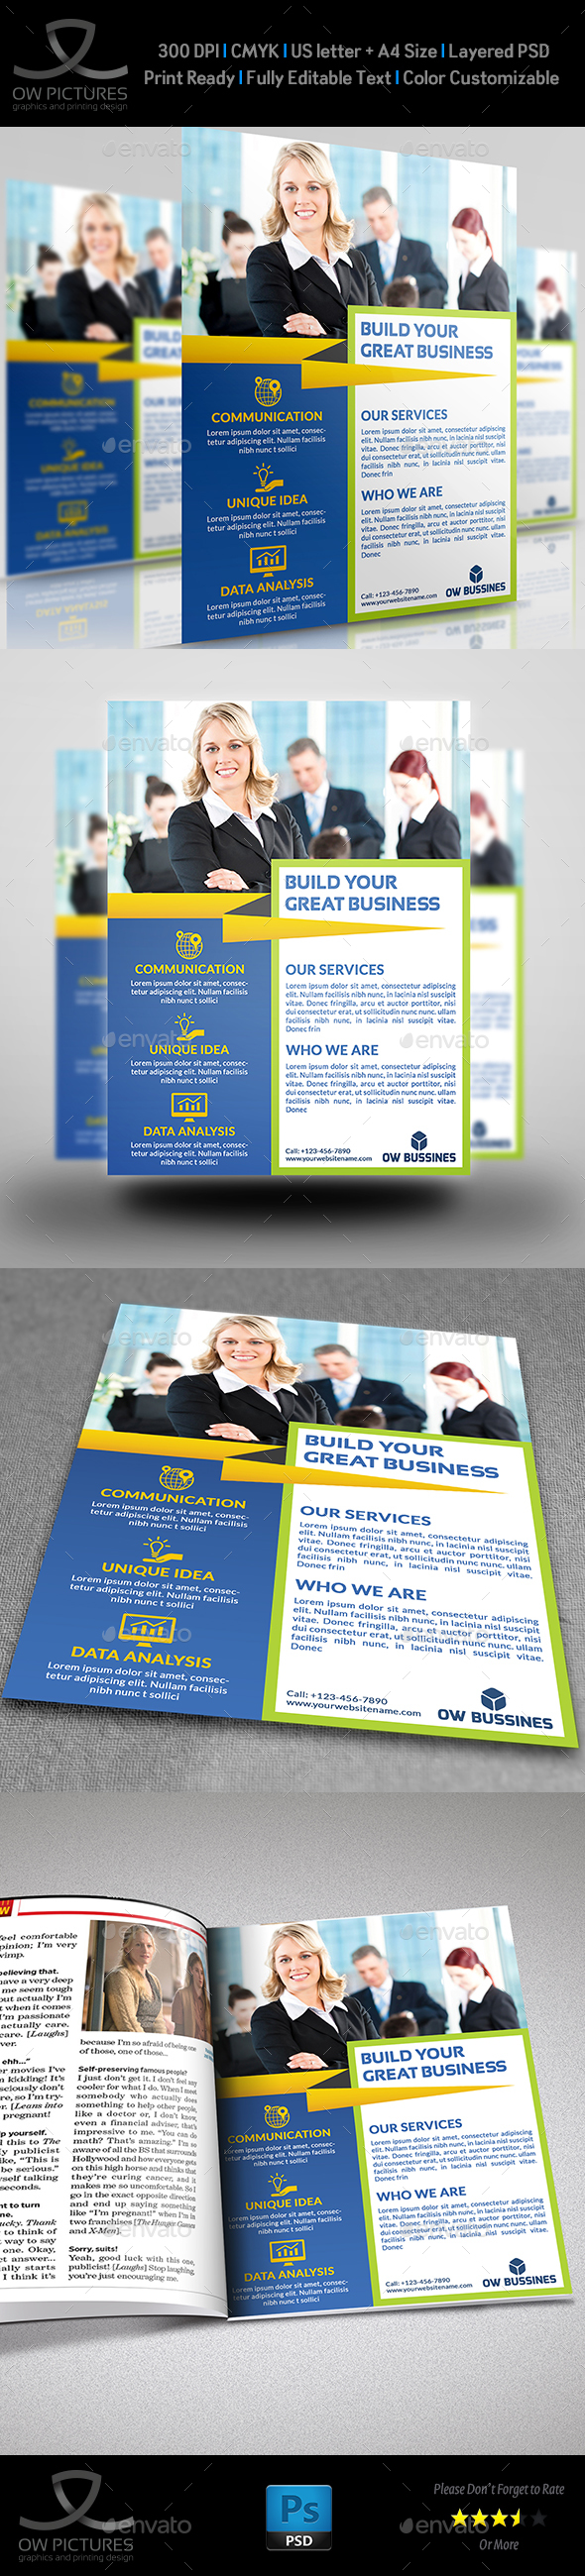 Corporate Business Flyer Template Vol.23 - Corporate Flyers